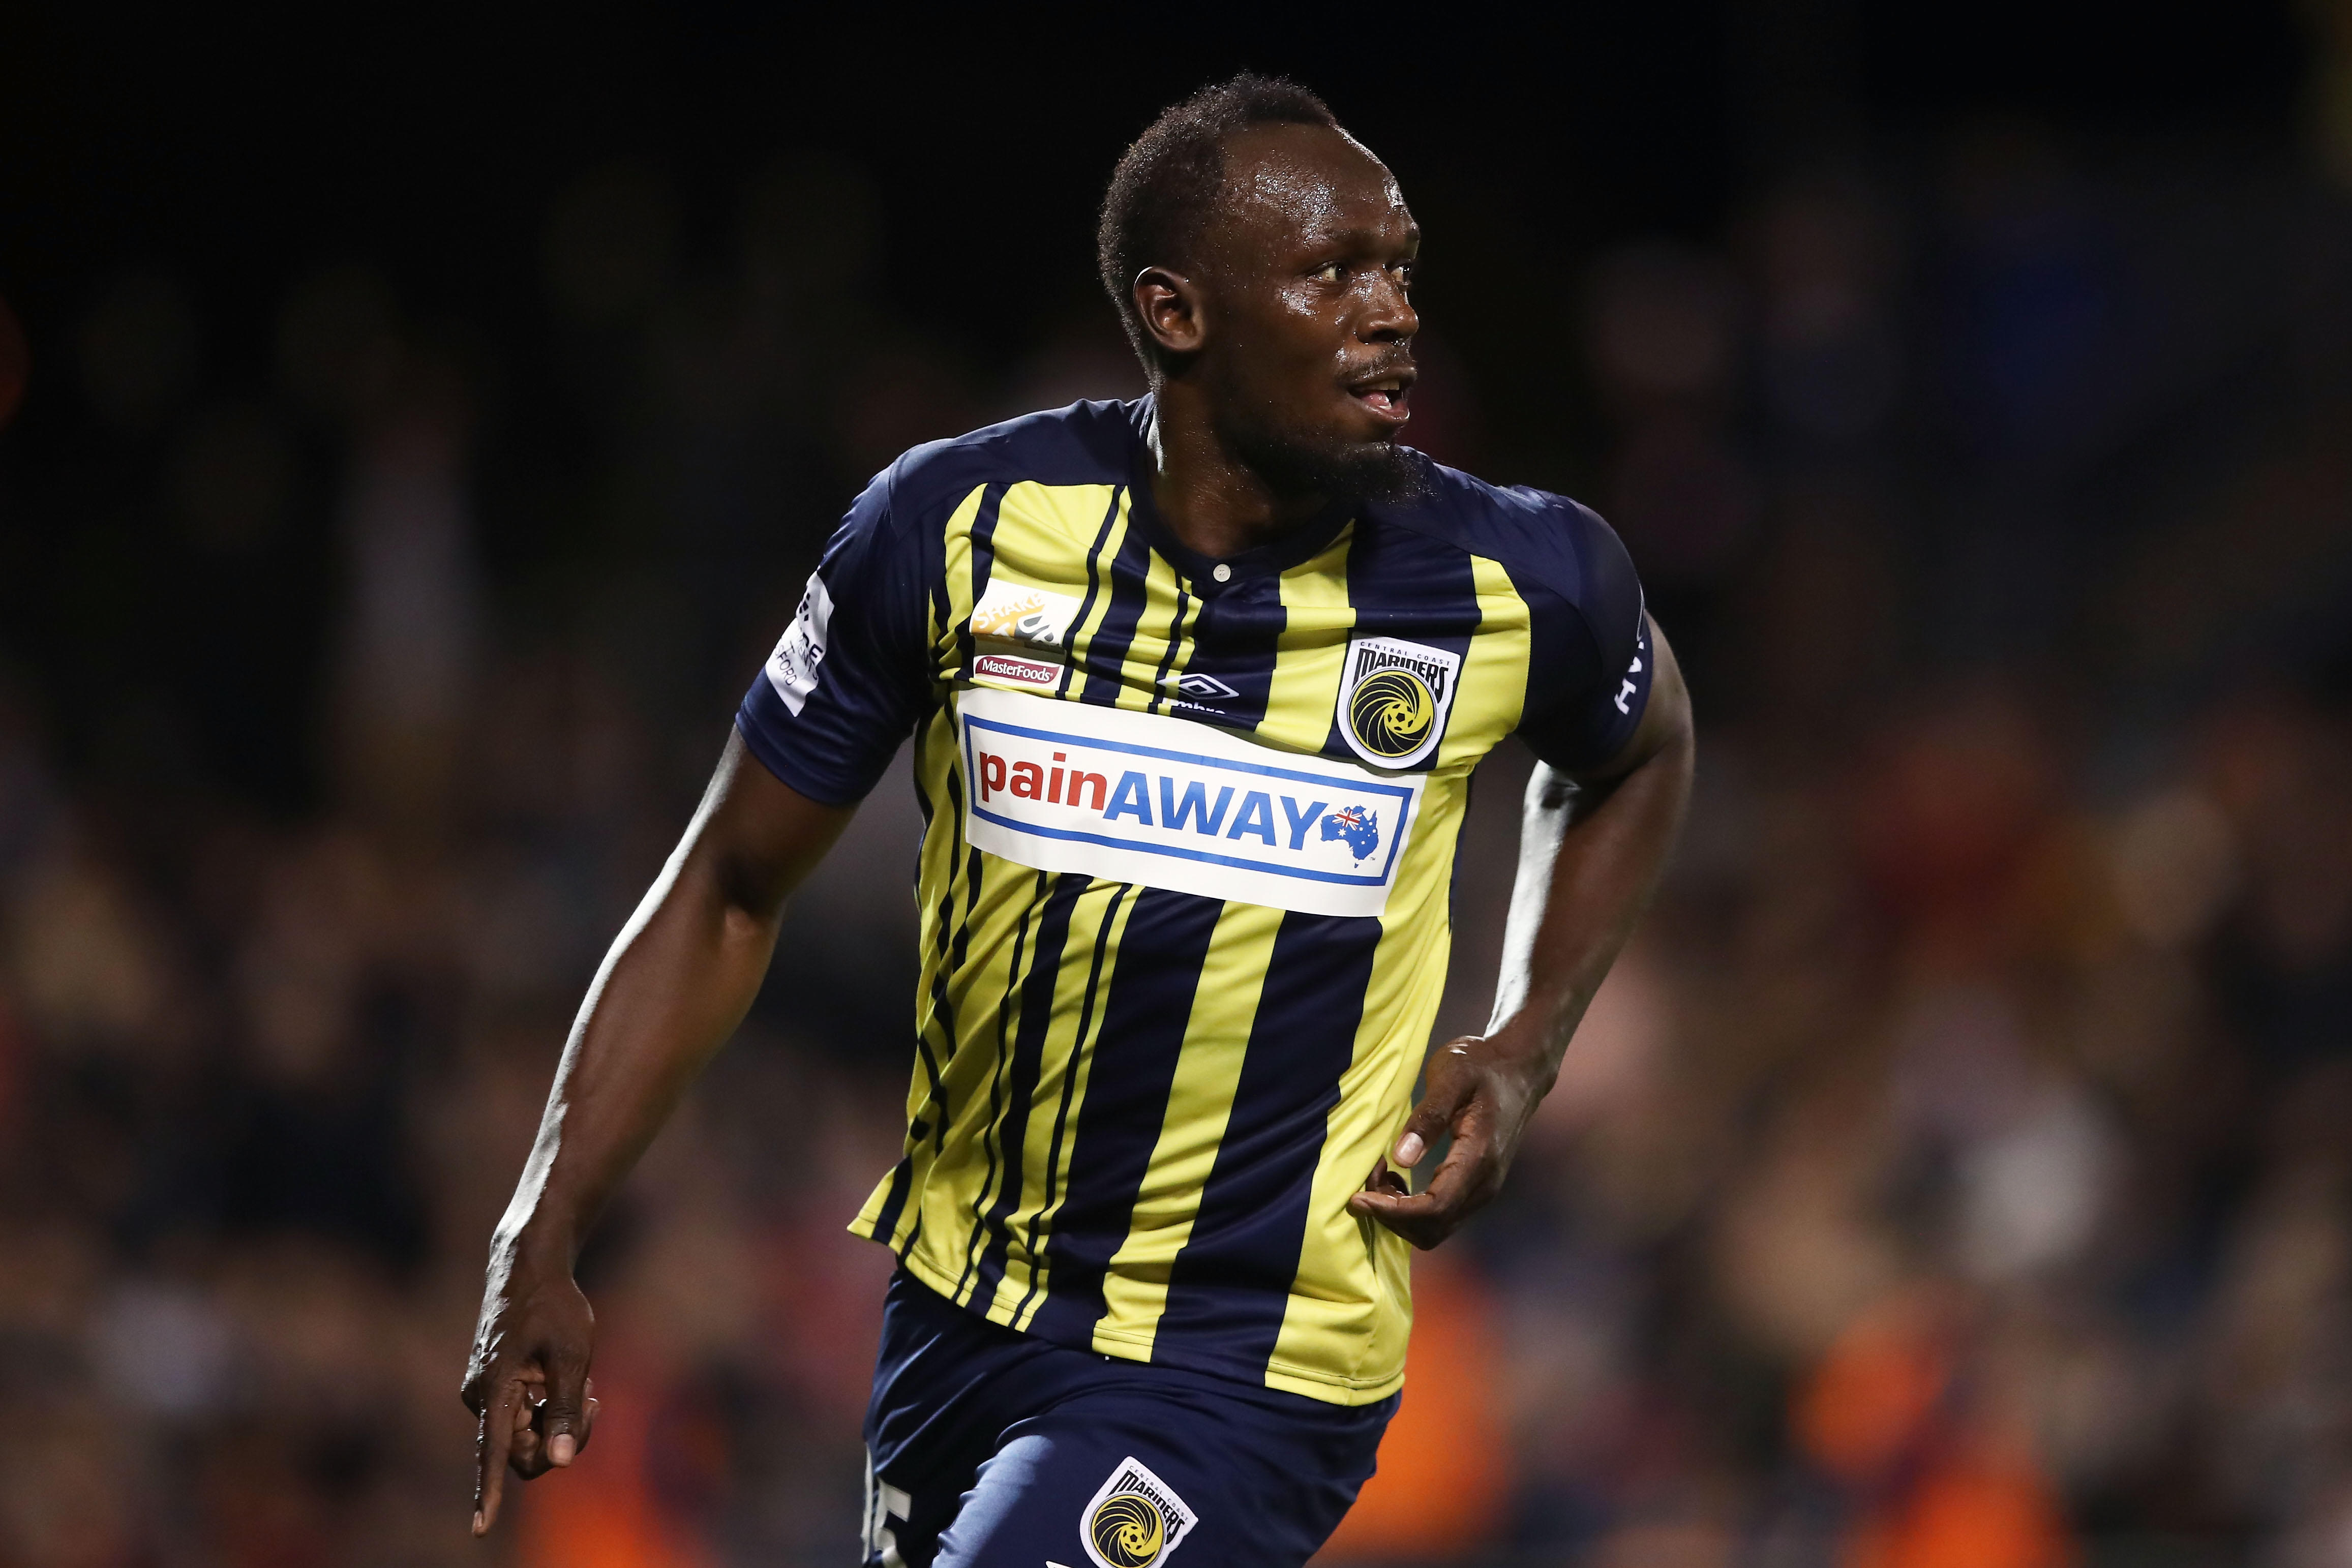 fbfcd4f2b13 Usain Bolt  Soccer debut with Central Coast Mariners in Australia A ...